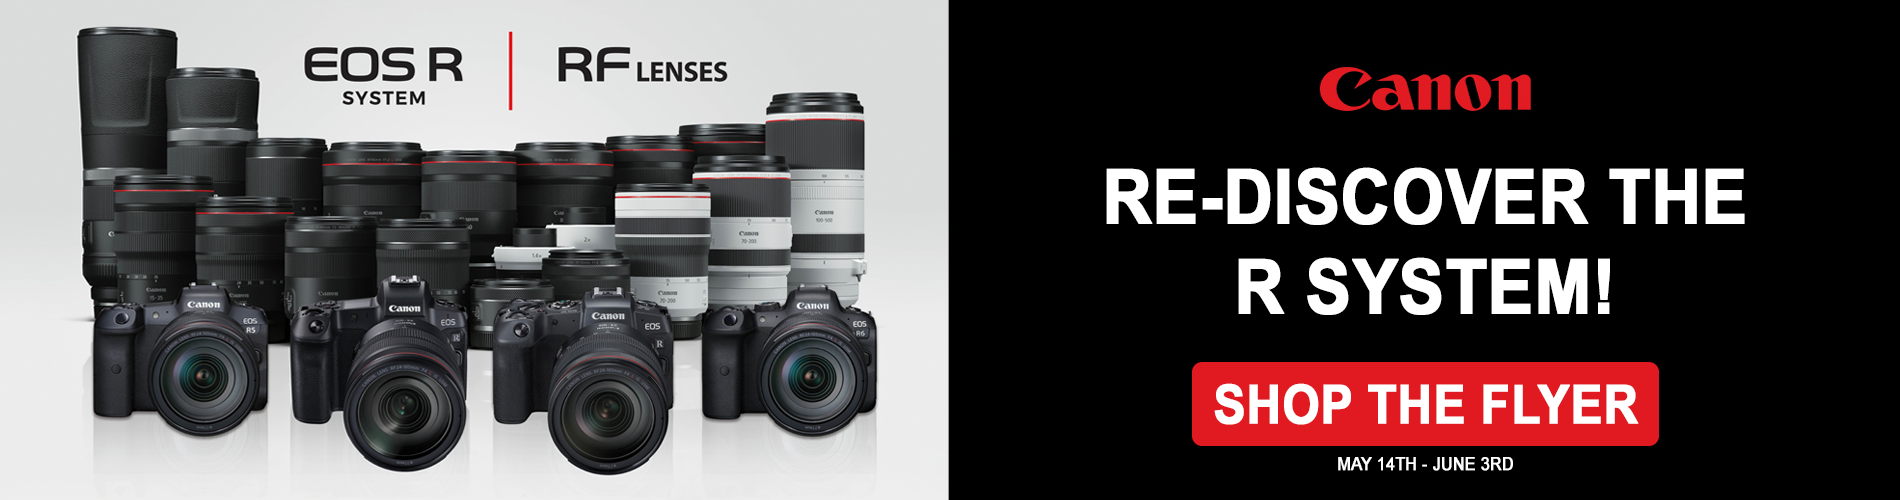 Canon EOS R System flyer Excellent Photo Montreal Canada